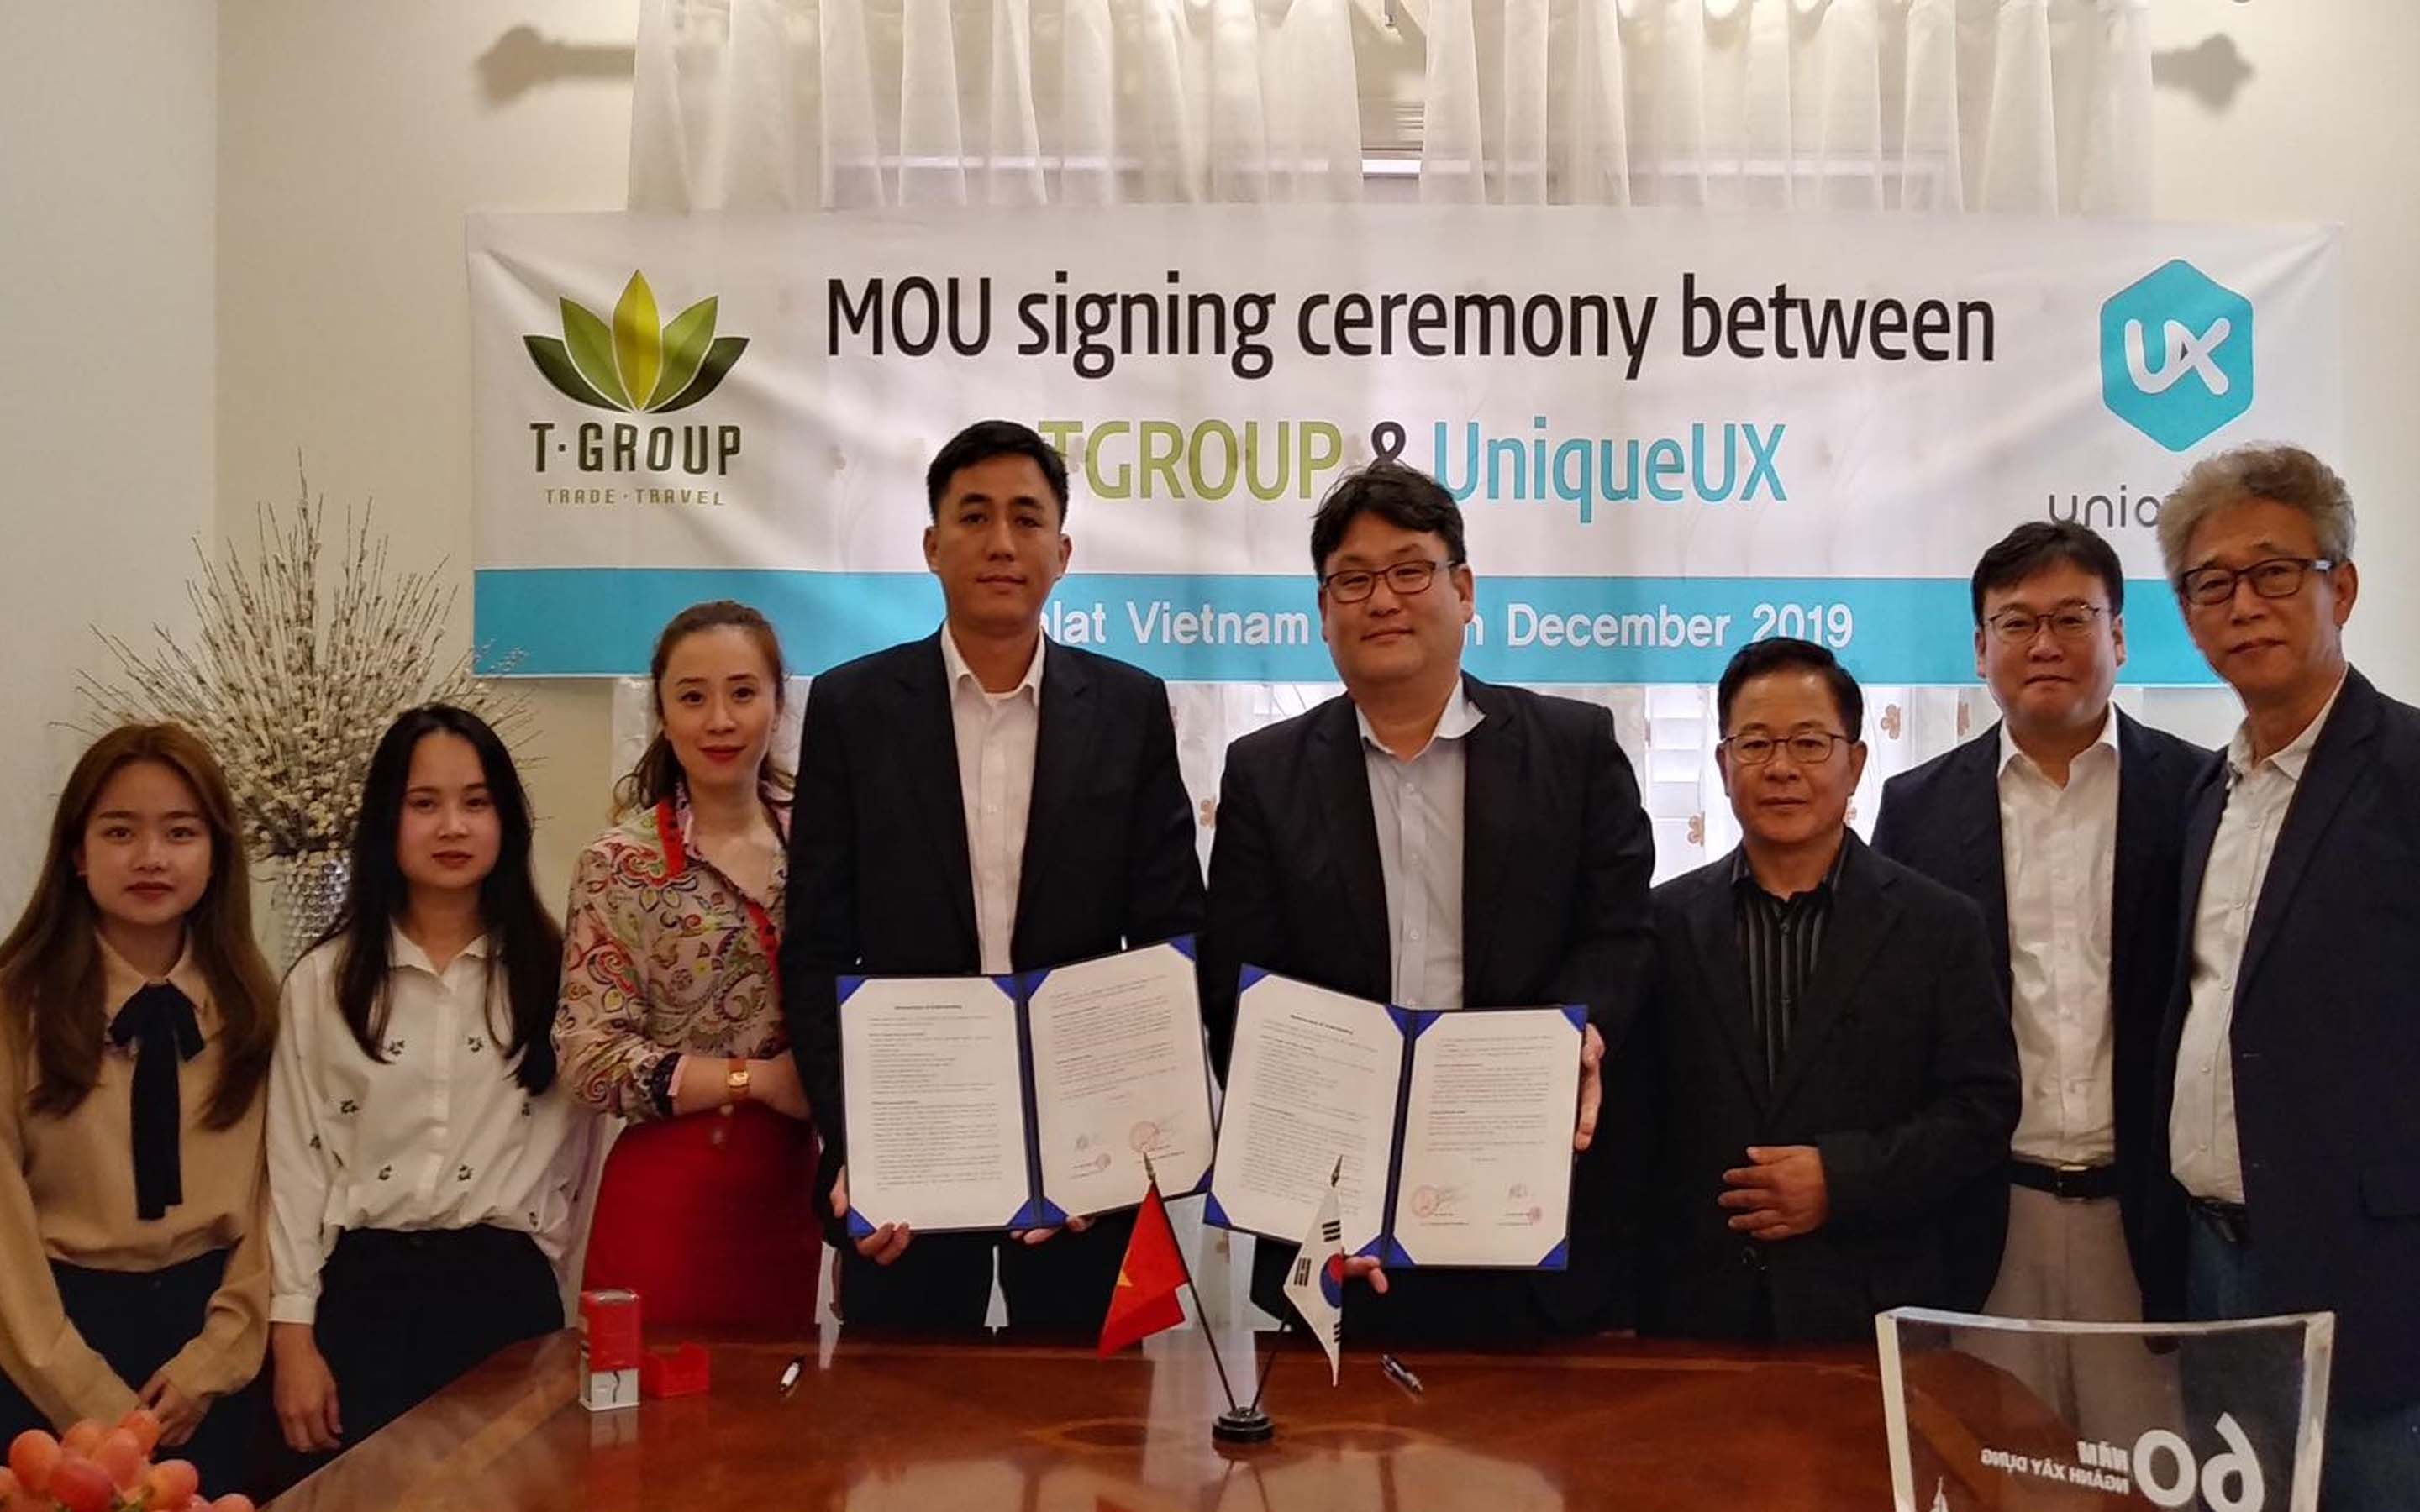 MOU signing ceremony between Tgroup & UniqueUX